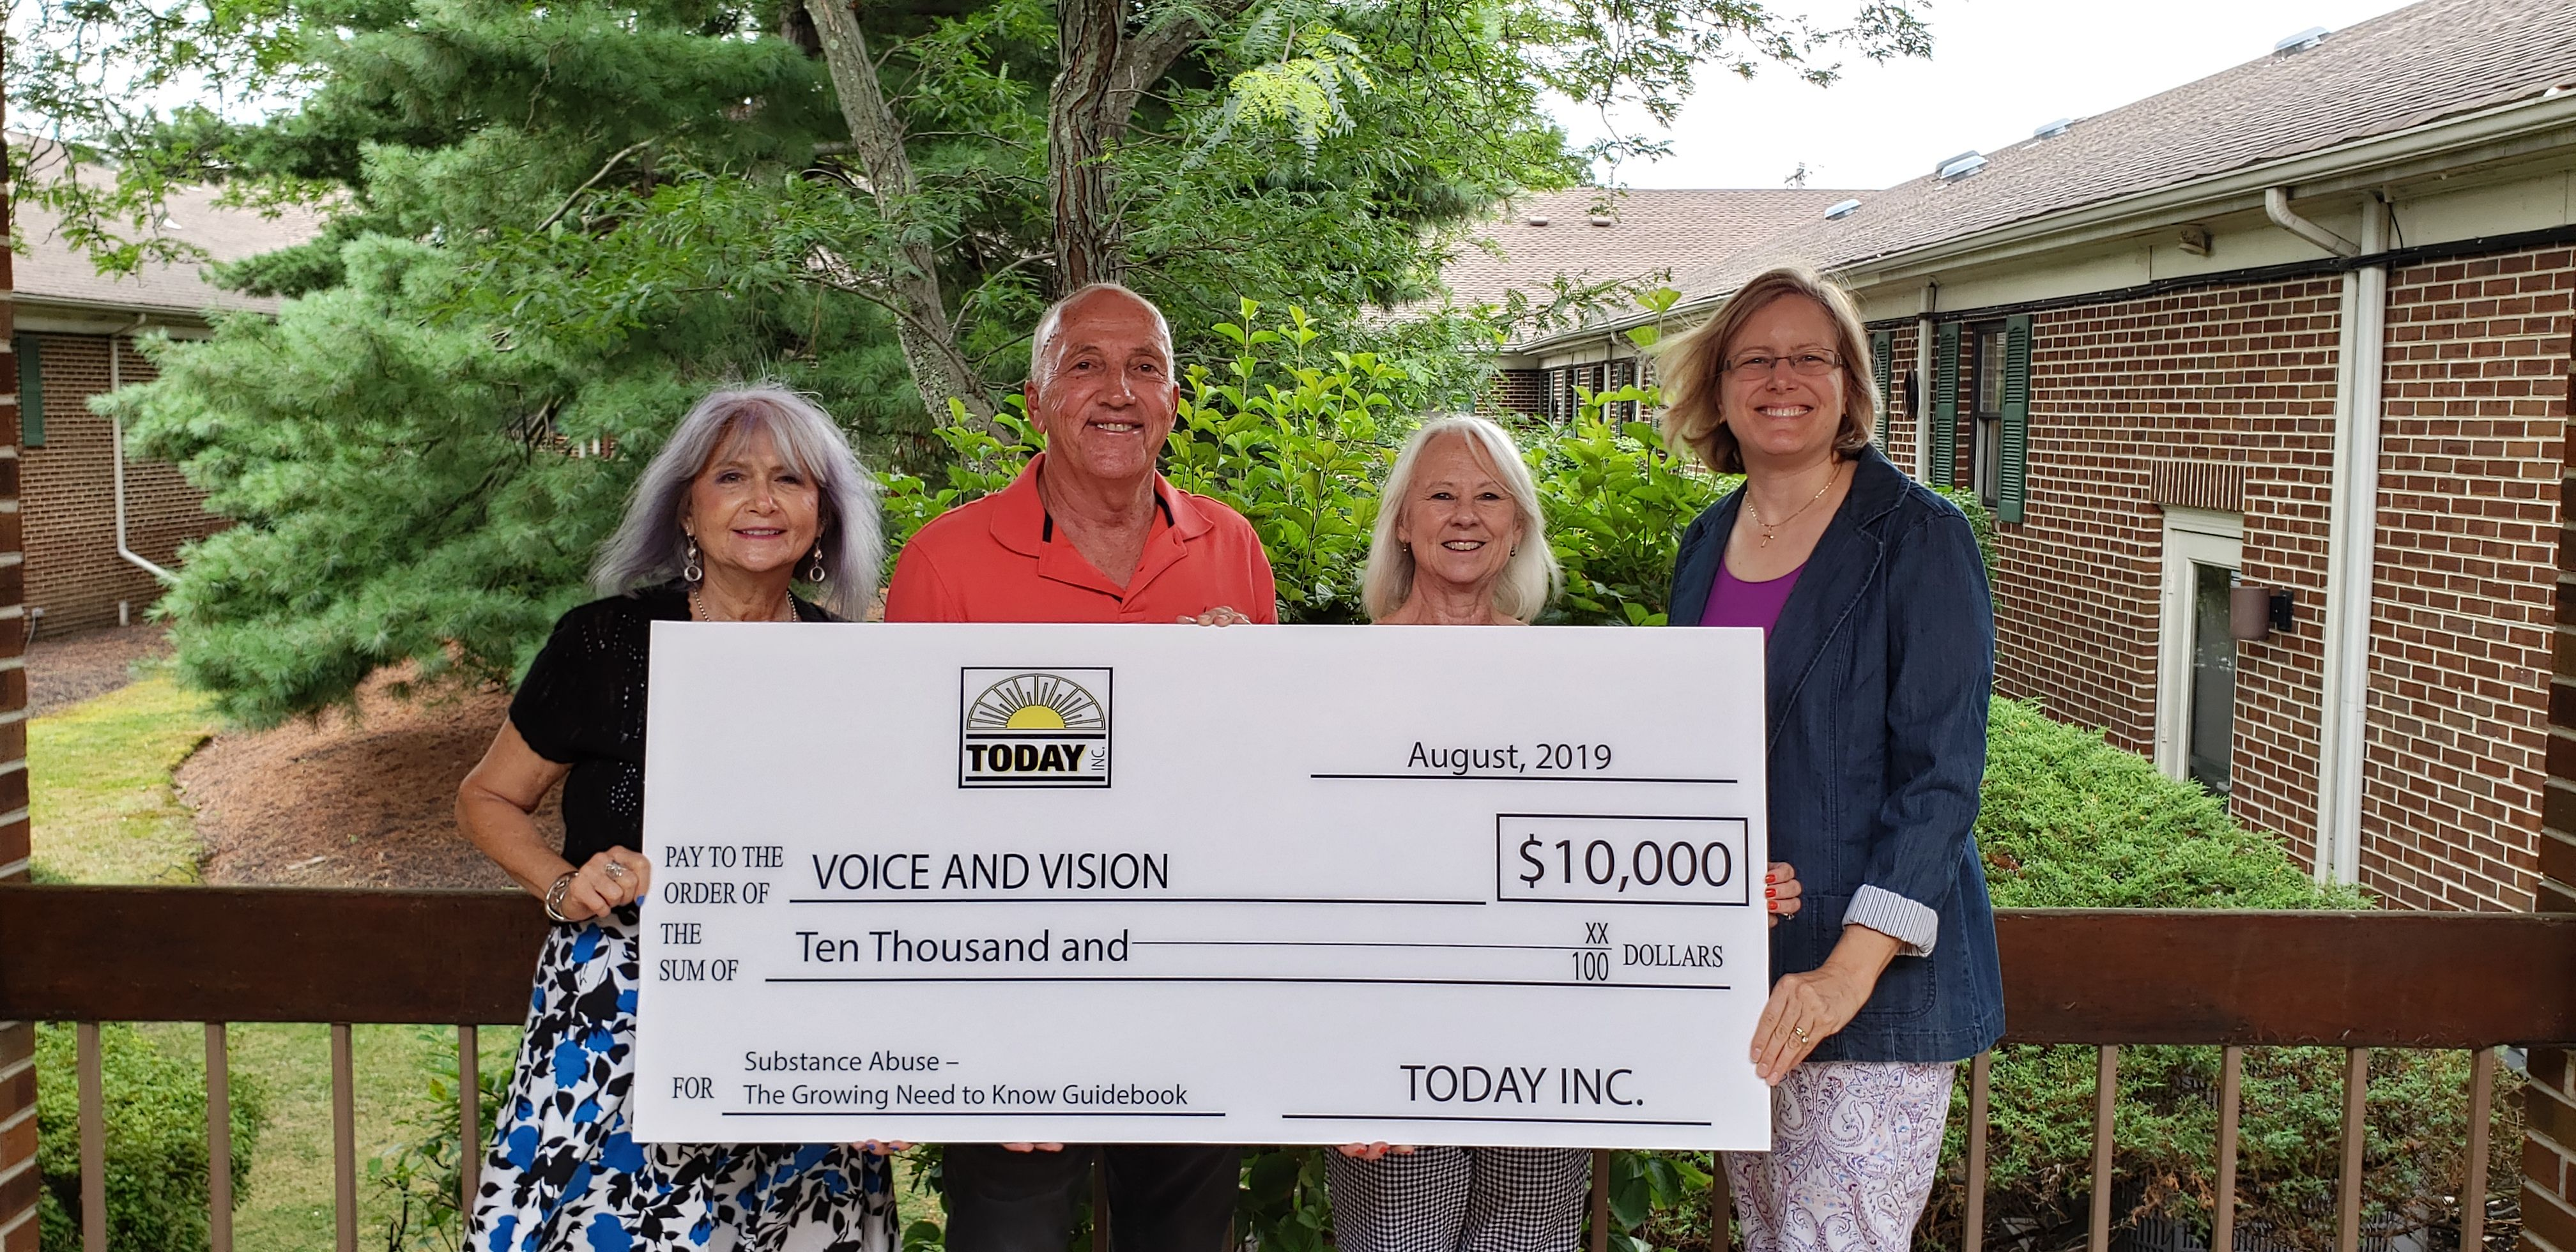 Pictured from left to right with the check: Valerie Melroy (Voice and Vision, Inc., CEO), John Howell (Executive Director, Today, Inc.), Karen Plummer (Guide Producer) and Maria Miller (Guide Editor)